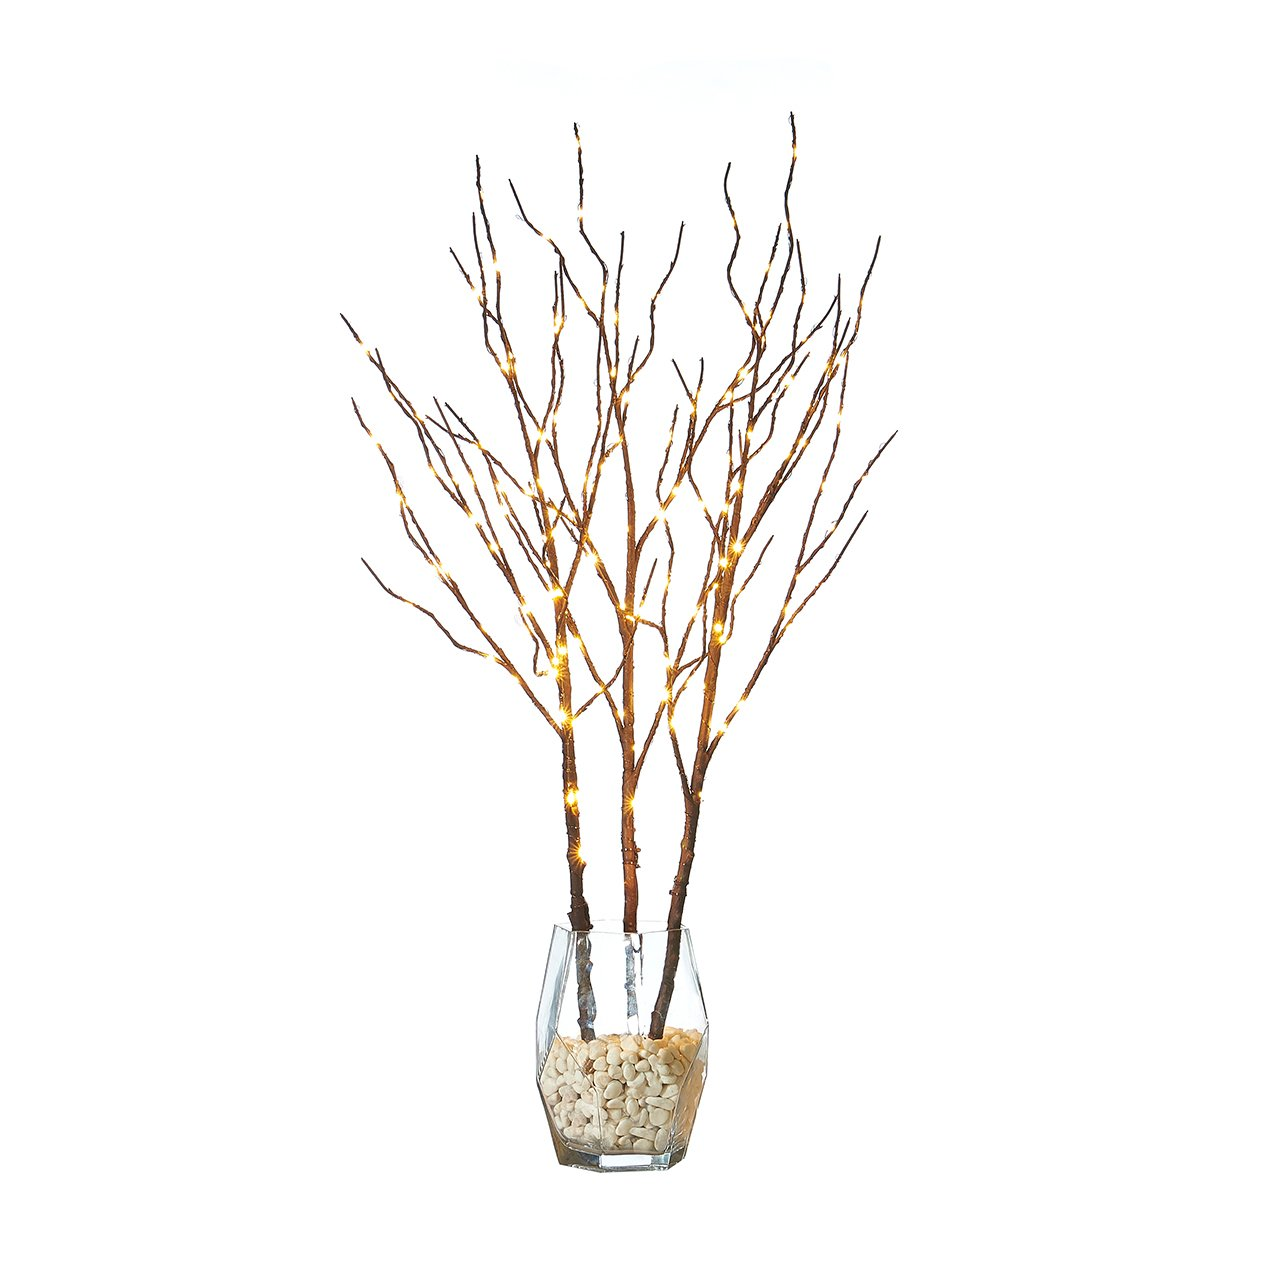 Hairui Tabletop Lighted Brown Branch Decor with Fairy Copper Lights 32inch 150LED, Pre-lit Twig Branch Tree Lights for Indoor Outdoor Home Christmas Garden Party Wedding Decoration Lights 3 Pack Hairui Decor Lights